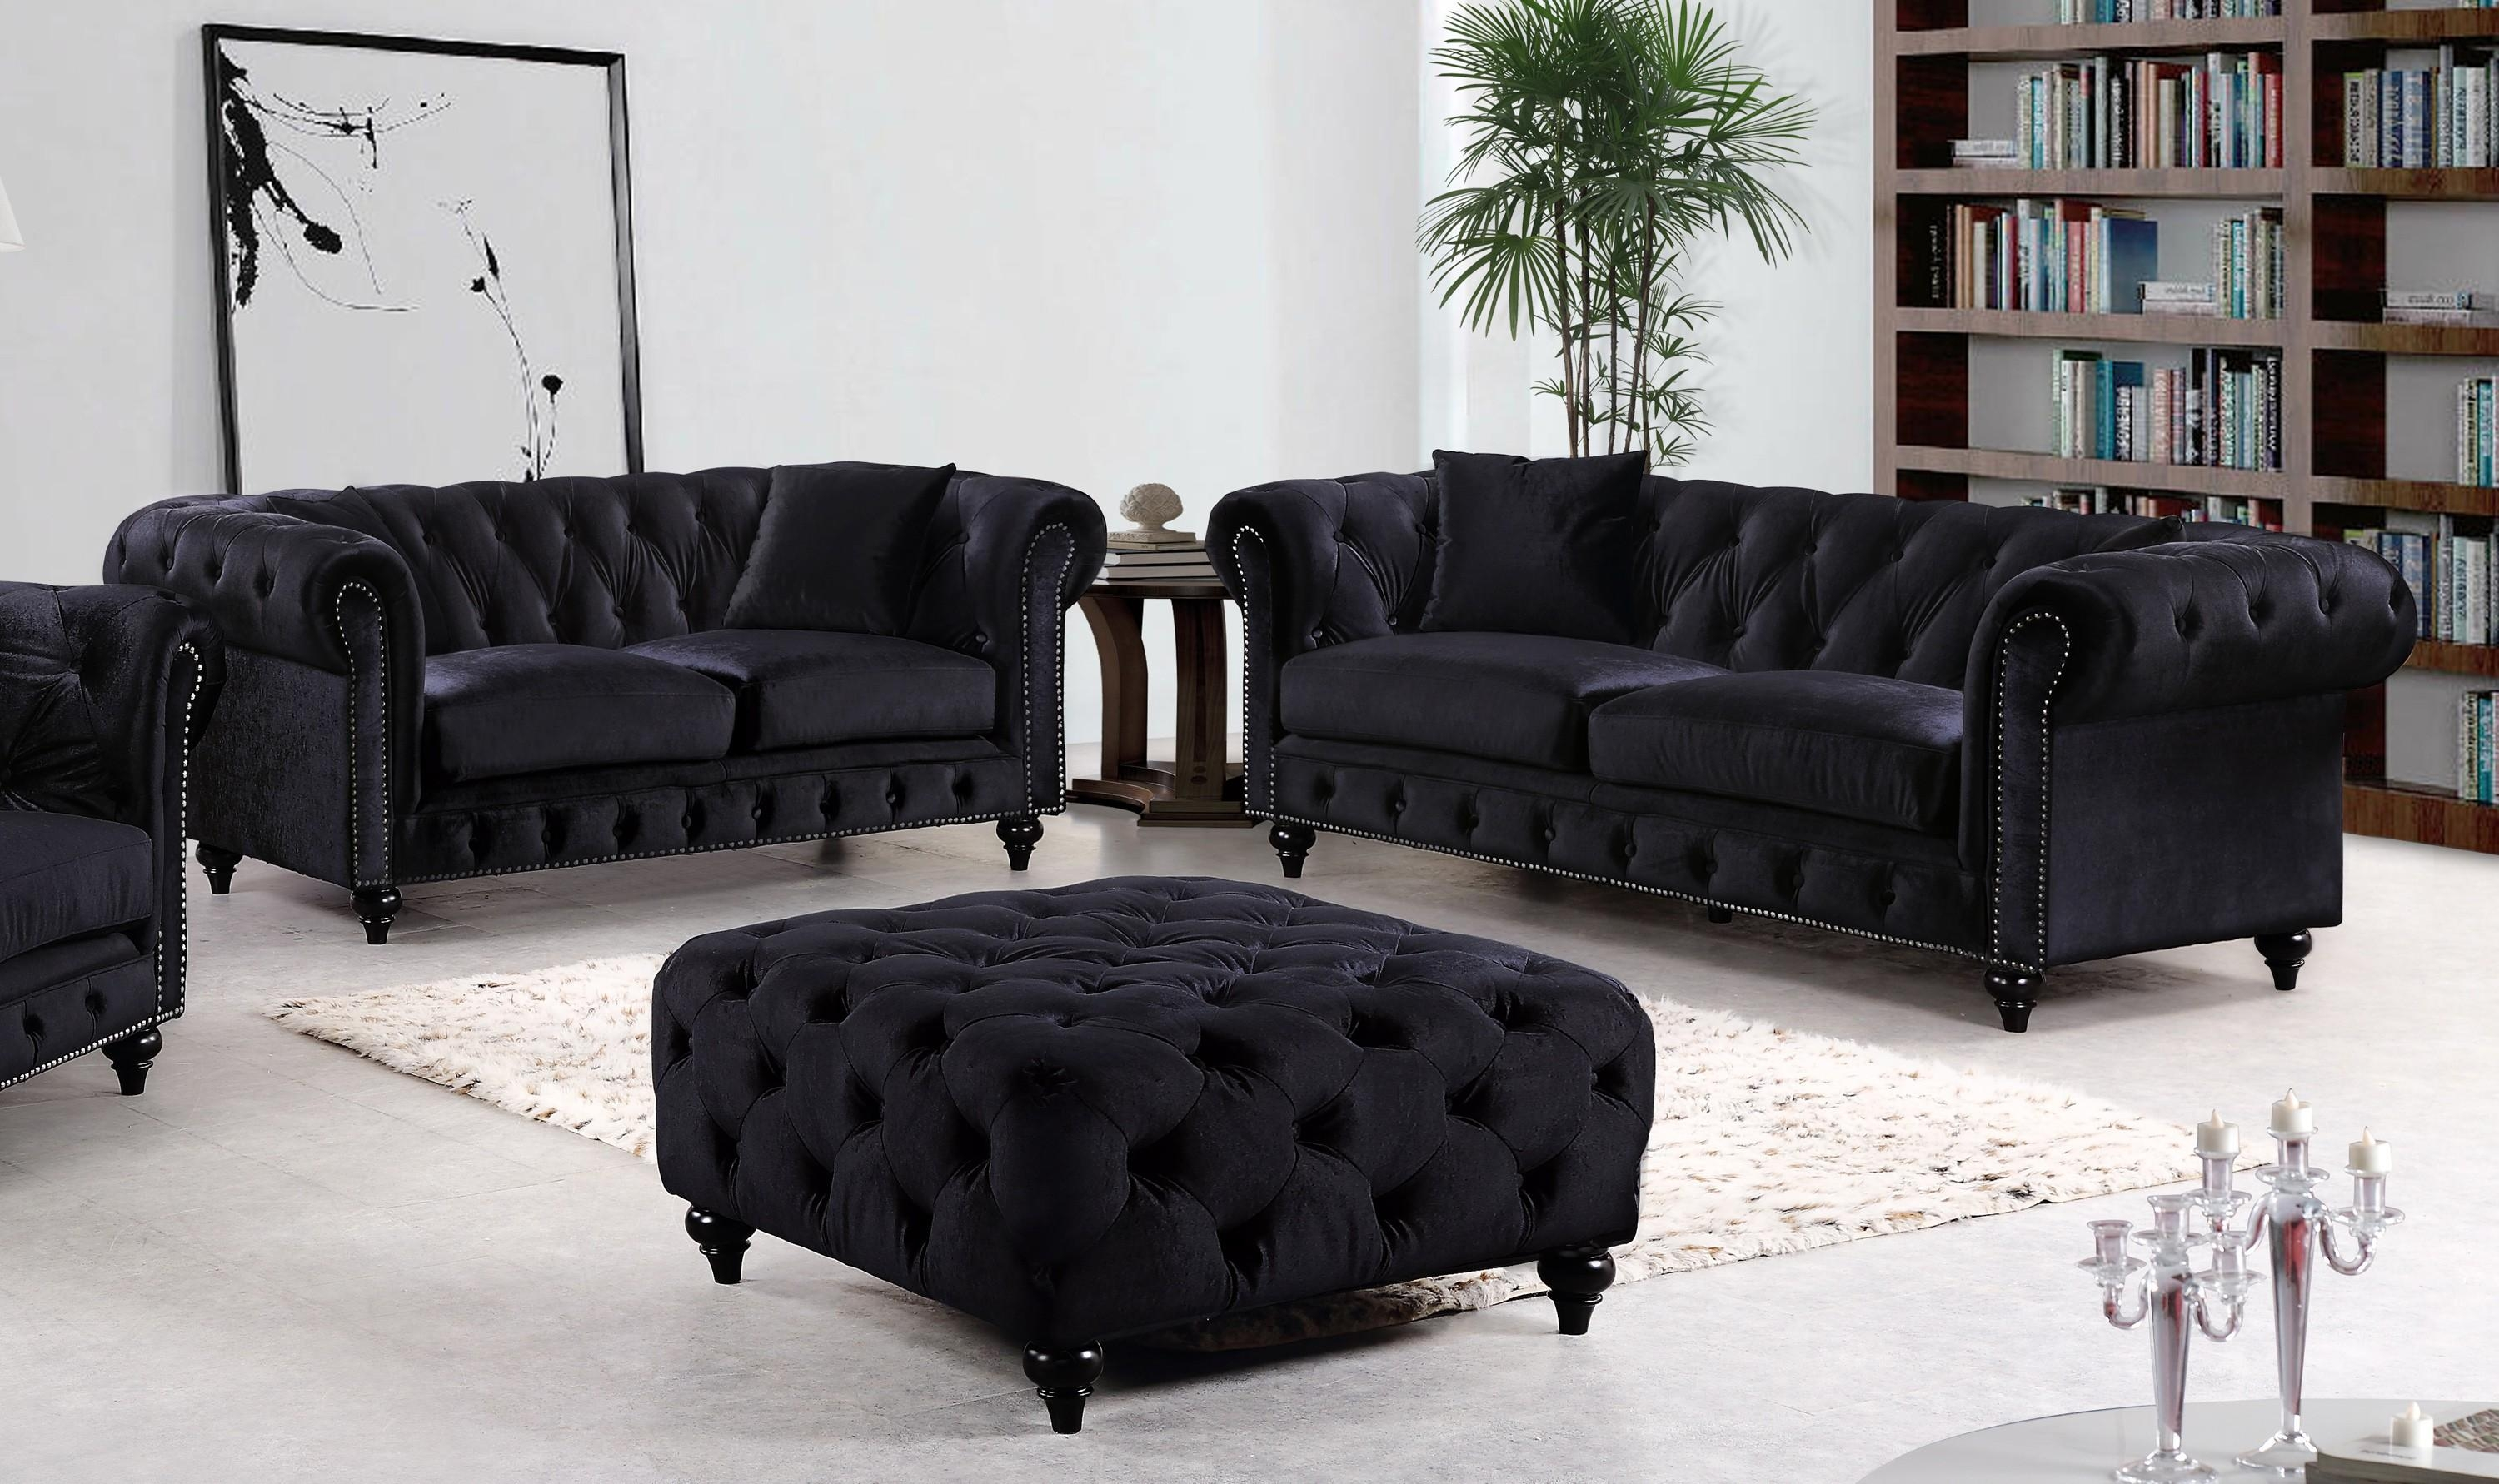 Best Velvet Sofa Set 13 In Contemporary Sofa Inspiration With With Black Velvet Sofas (Image 2 of 20)